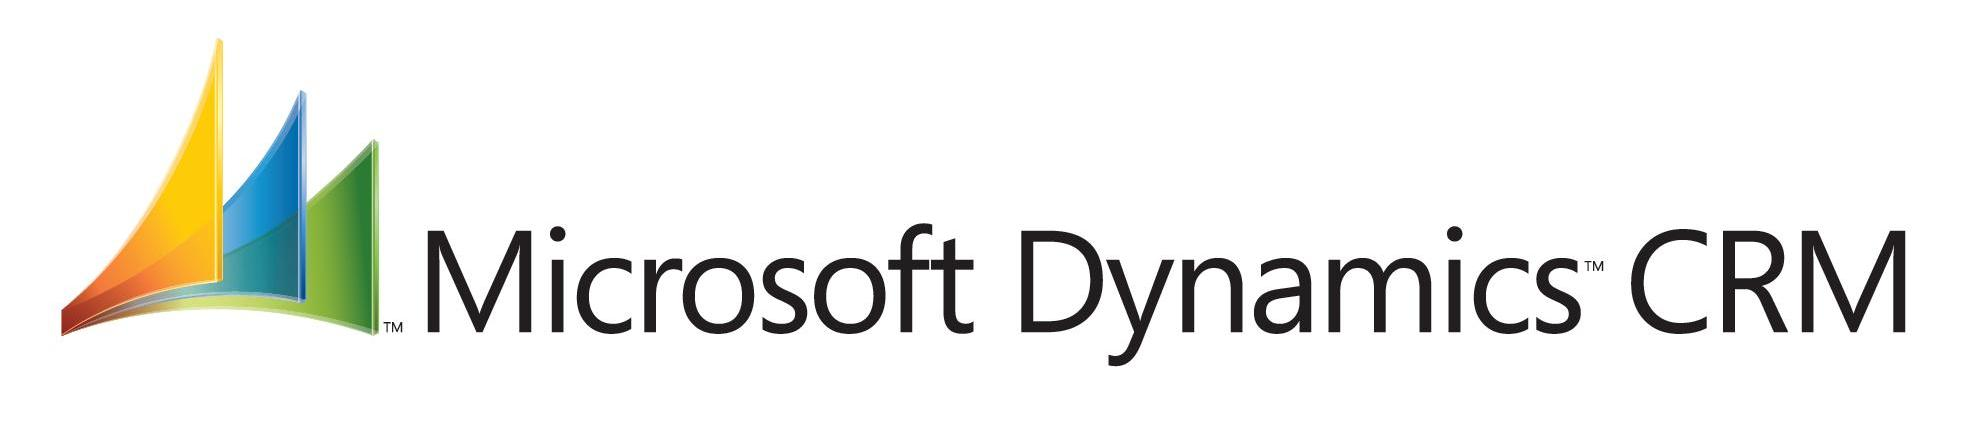 Microsoft Dynamics CRM Free Download